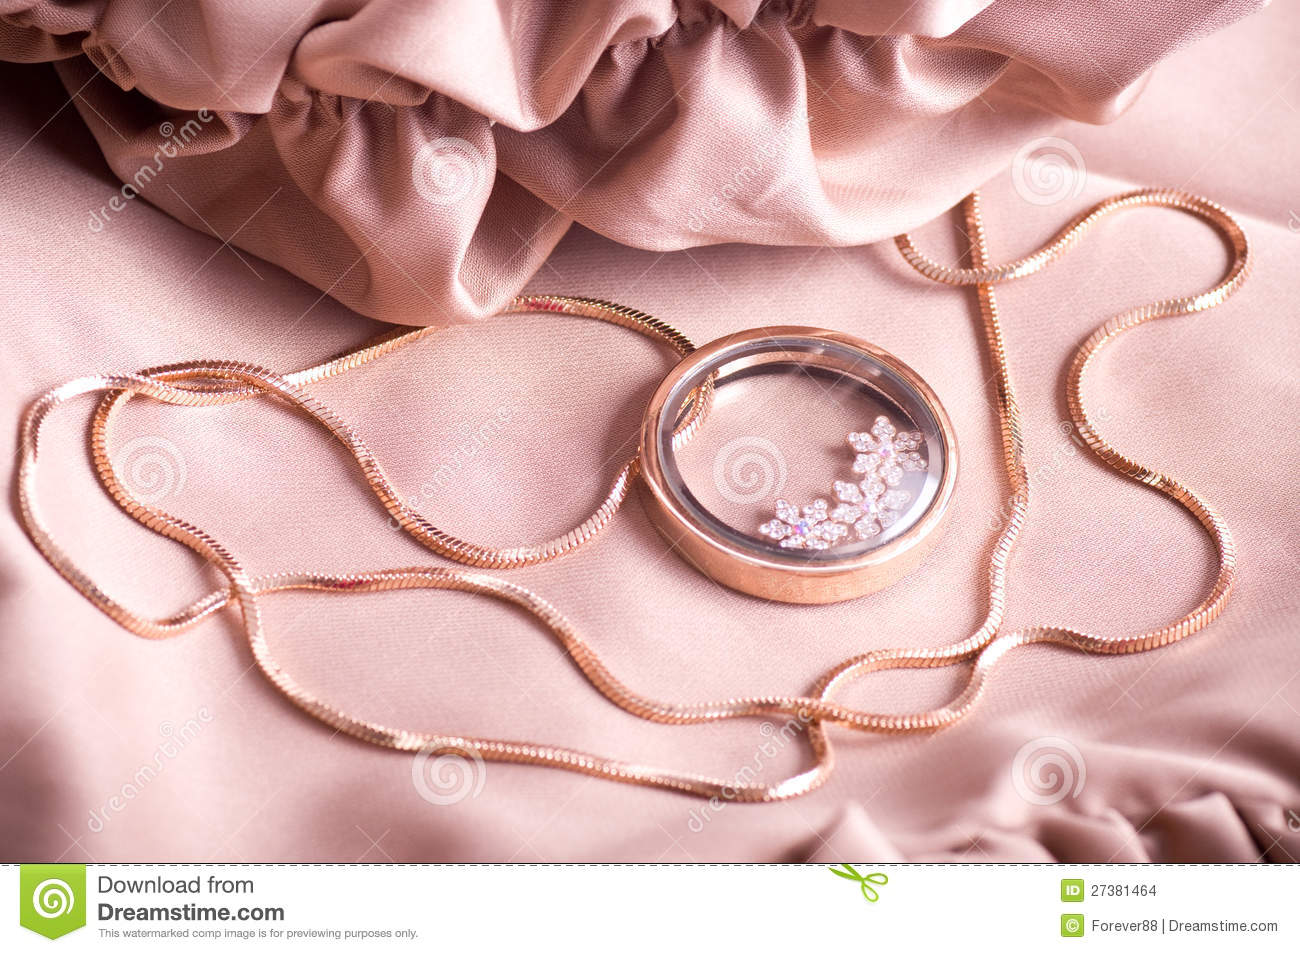 Beautiful jewelry on background,photo for a design.